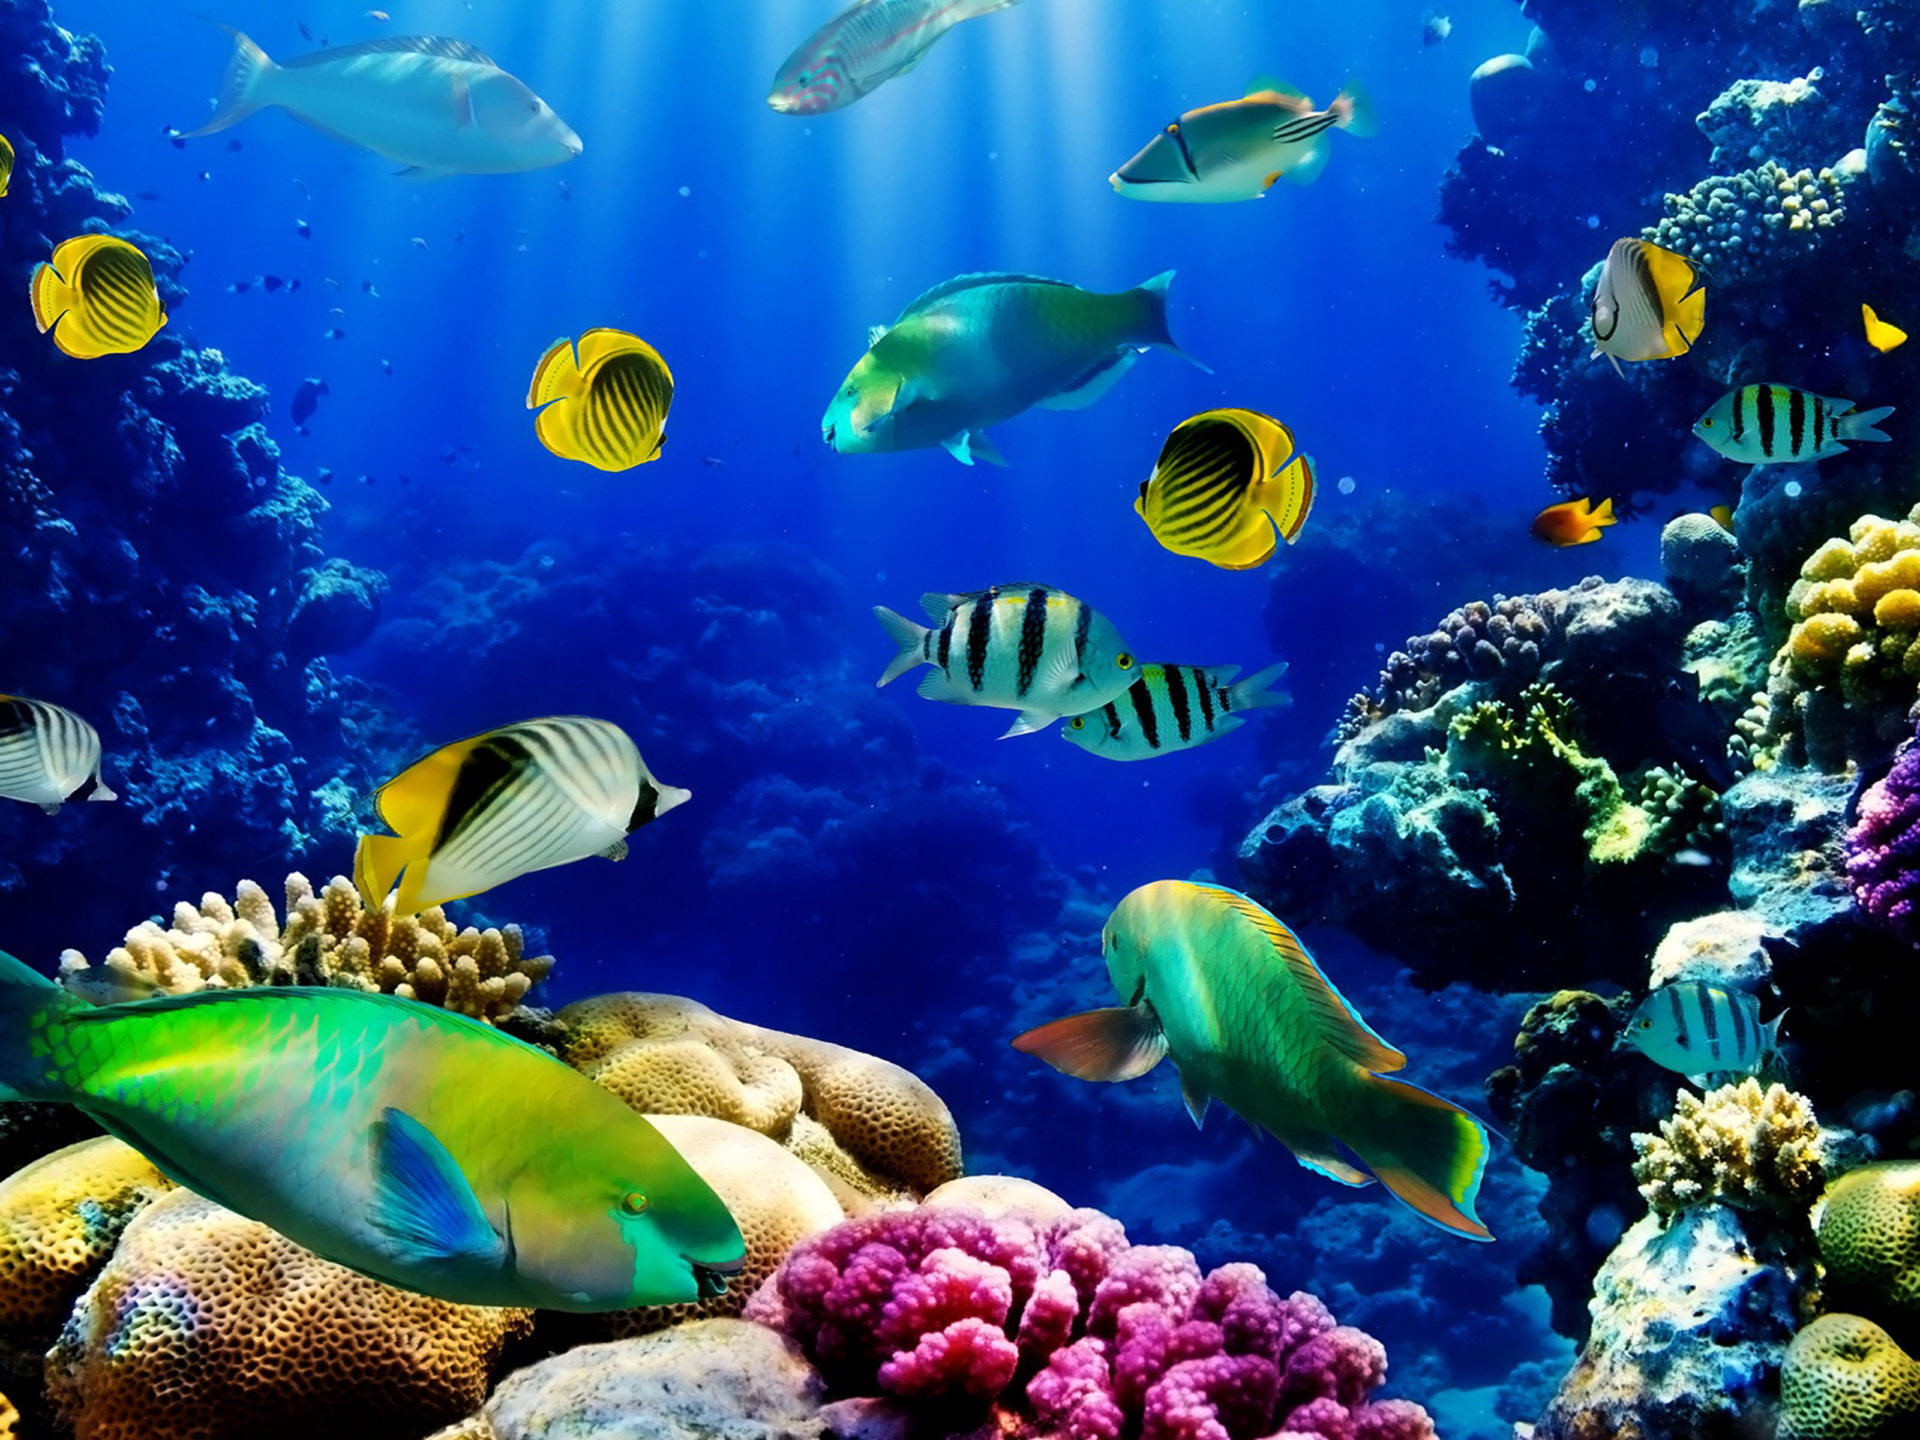 Iphone X Live Wallpaper Android Fish Ocean Seabed Tropical Reef Coral Hd Wallpaper